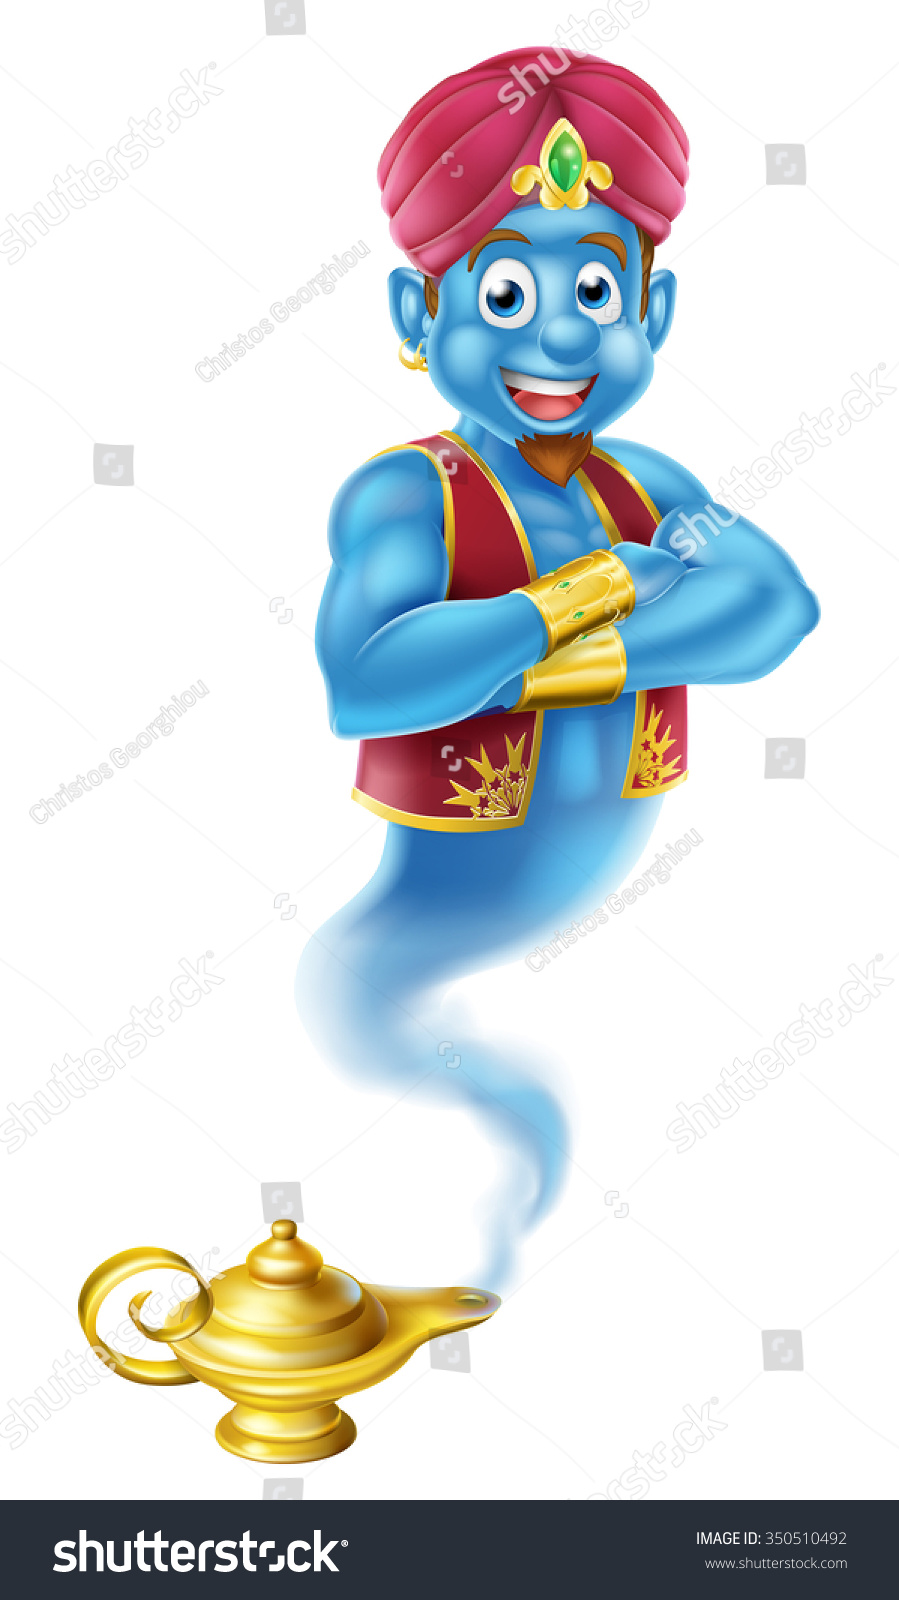 Cartoon Genie Like Story Aladdin Coming Stock Vector 350510492 ... for aladdin genie coming out of lamp  35fsj